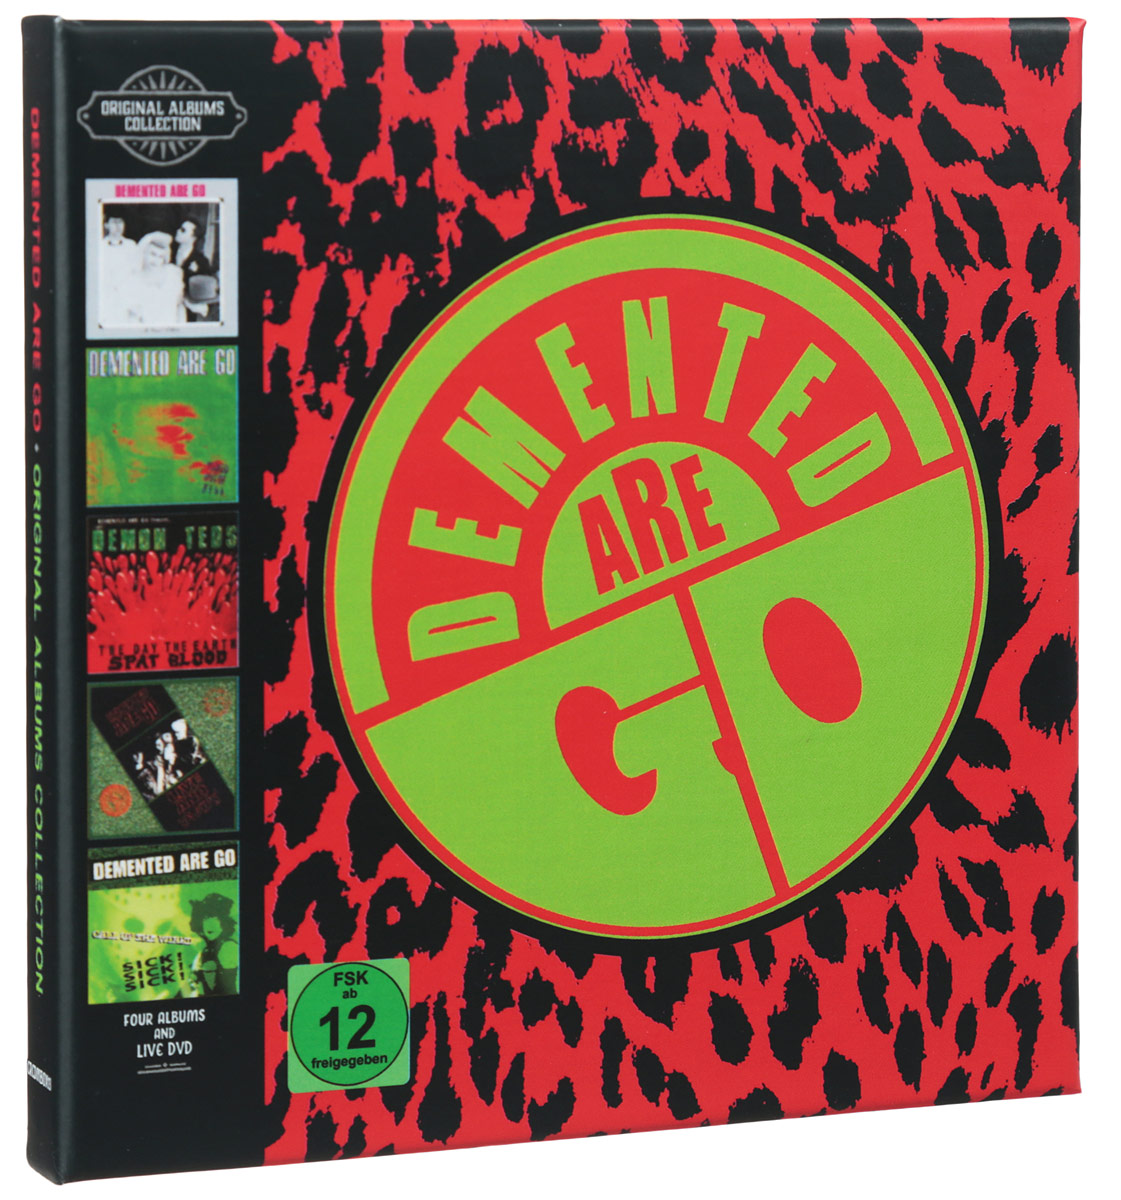 Demented Are Go Demented Are Go. Original Albums Boxset (3 CD + DVD) гардемарины 3 dvd